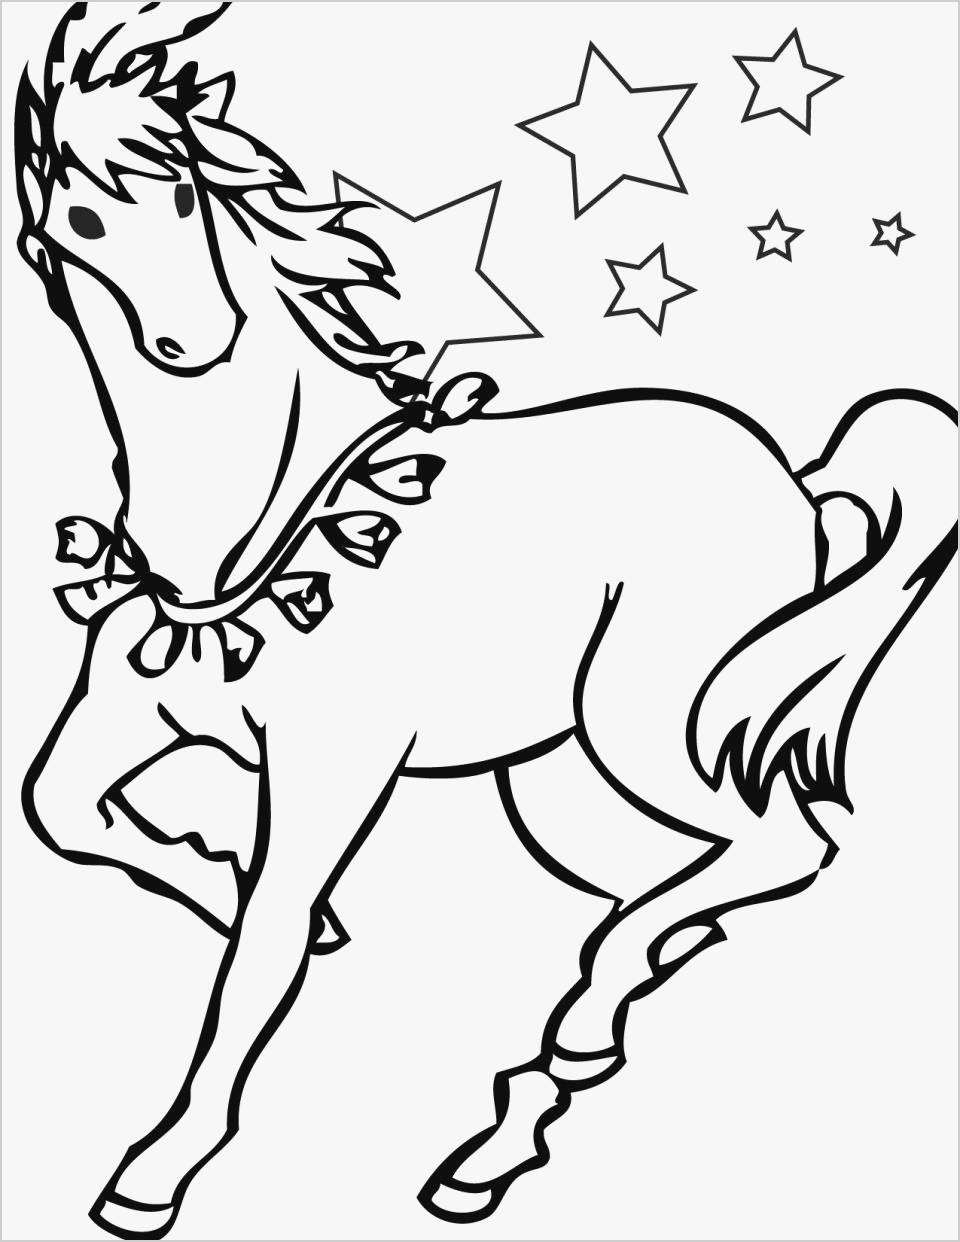 horse coloring pages printable Download-Download Horse Coloring Pages 16-t